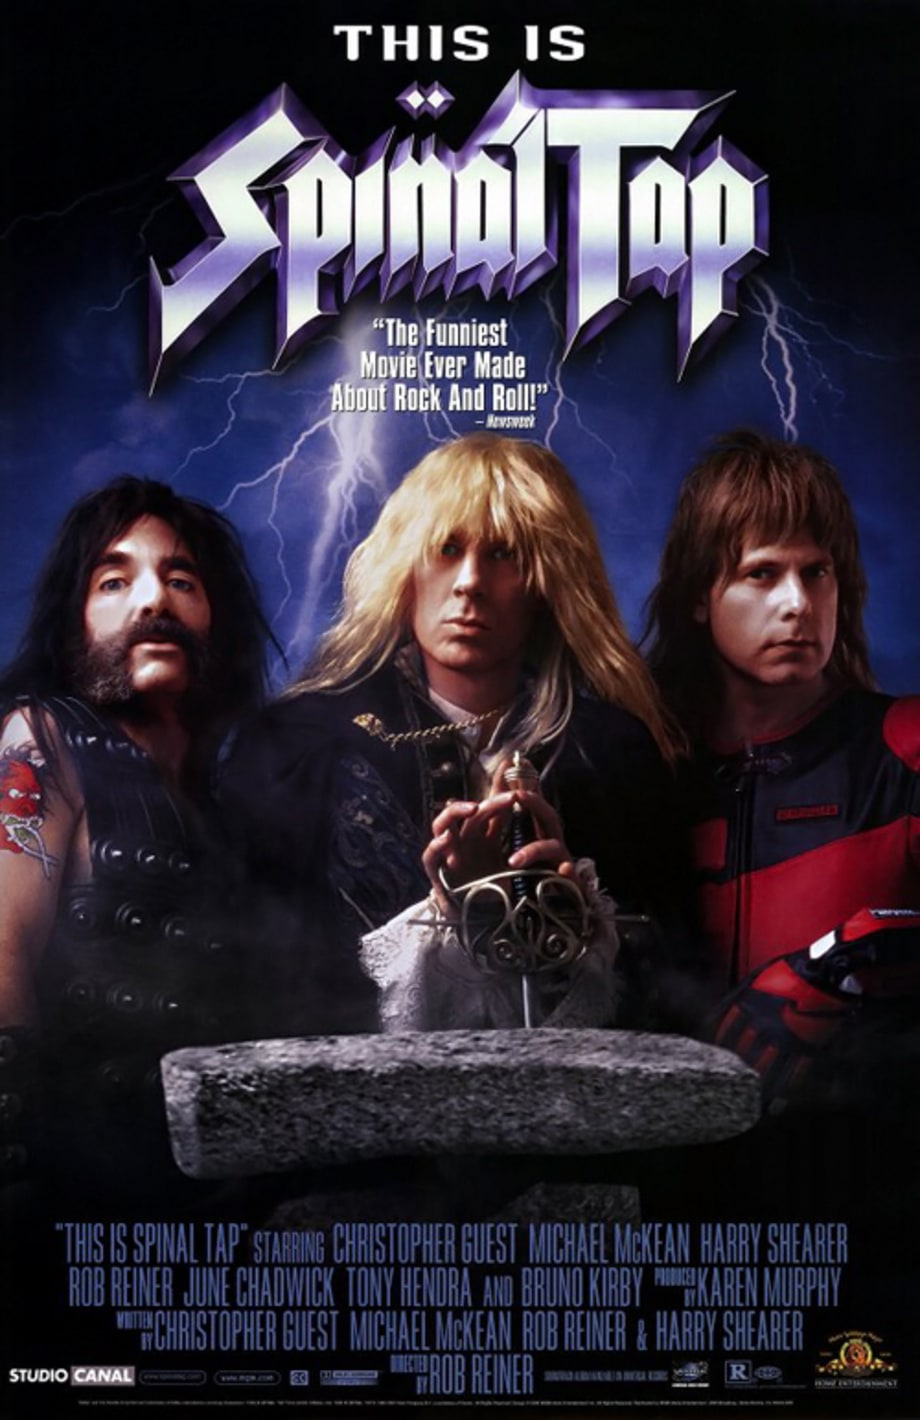 4. 'This Is Spinal Tap'